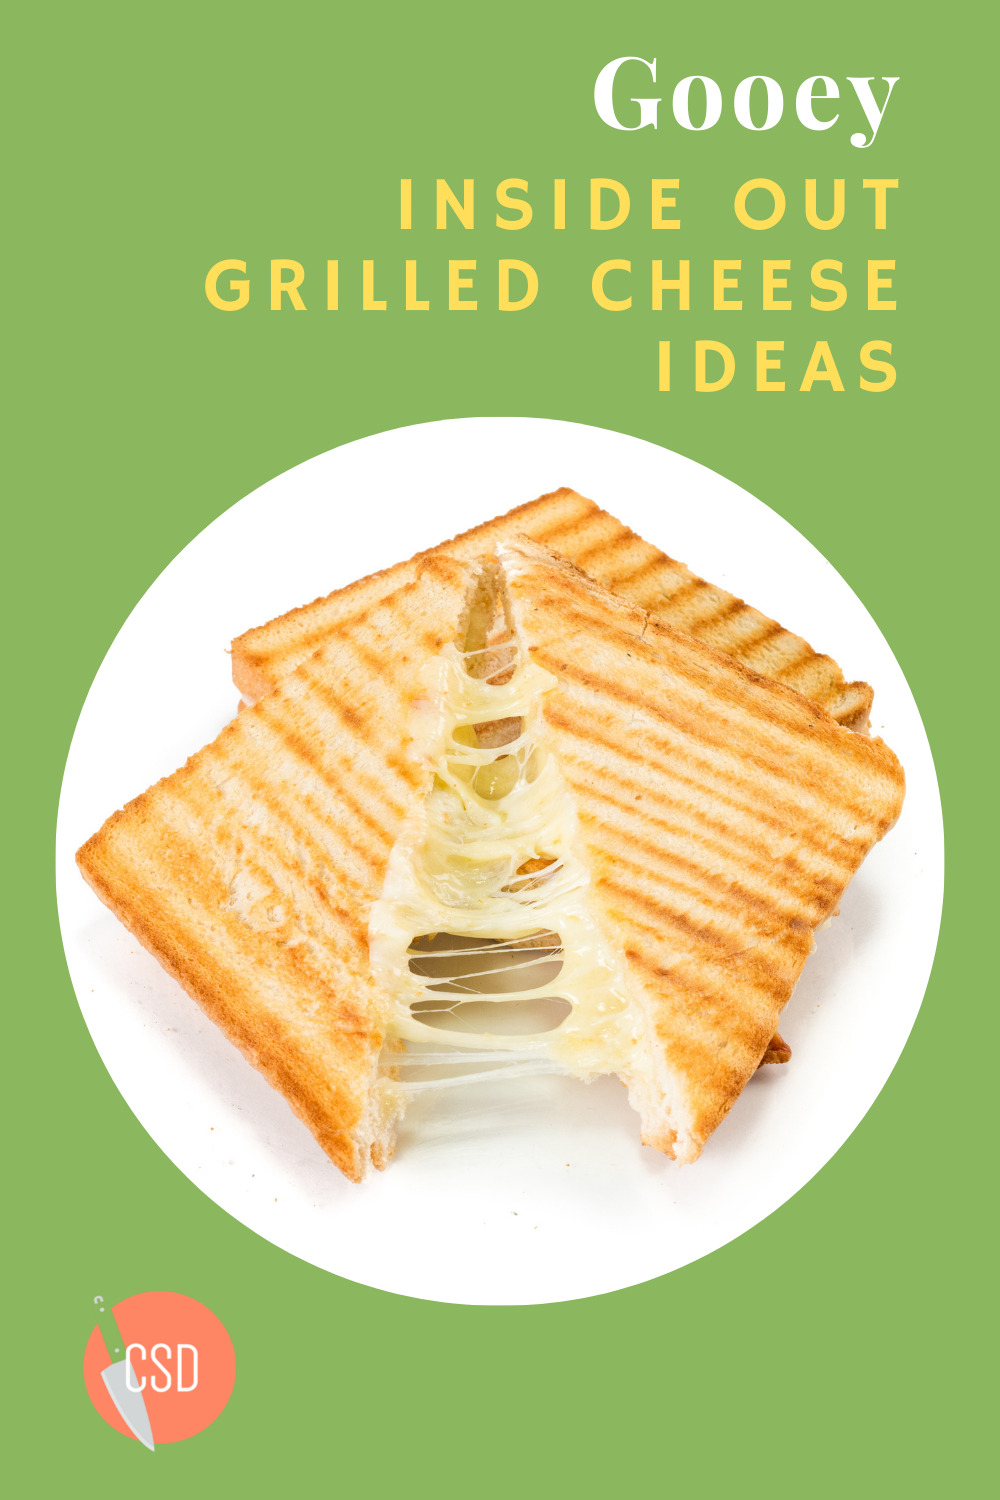 Cutsidedown.com makes cooking fun and easy! Find tons of tasty and simple recipes anyone can make! Mix things up with this delicious inside out grilled cheese recipe!